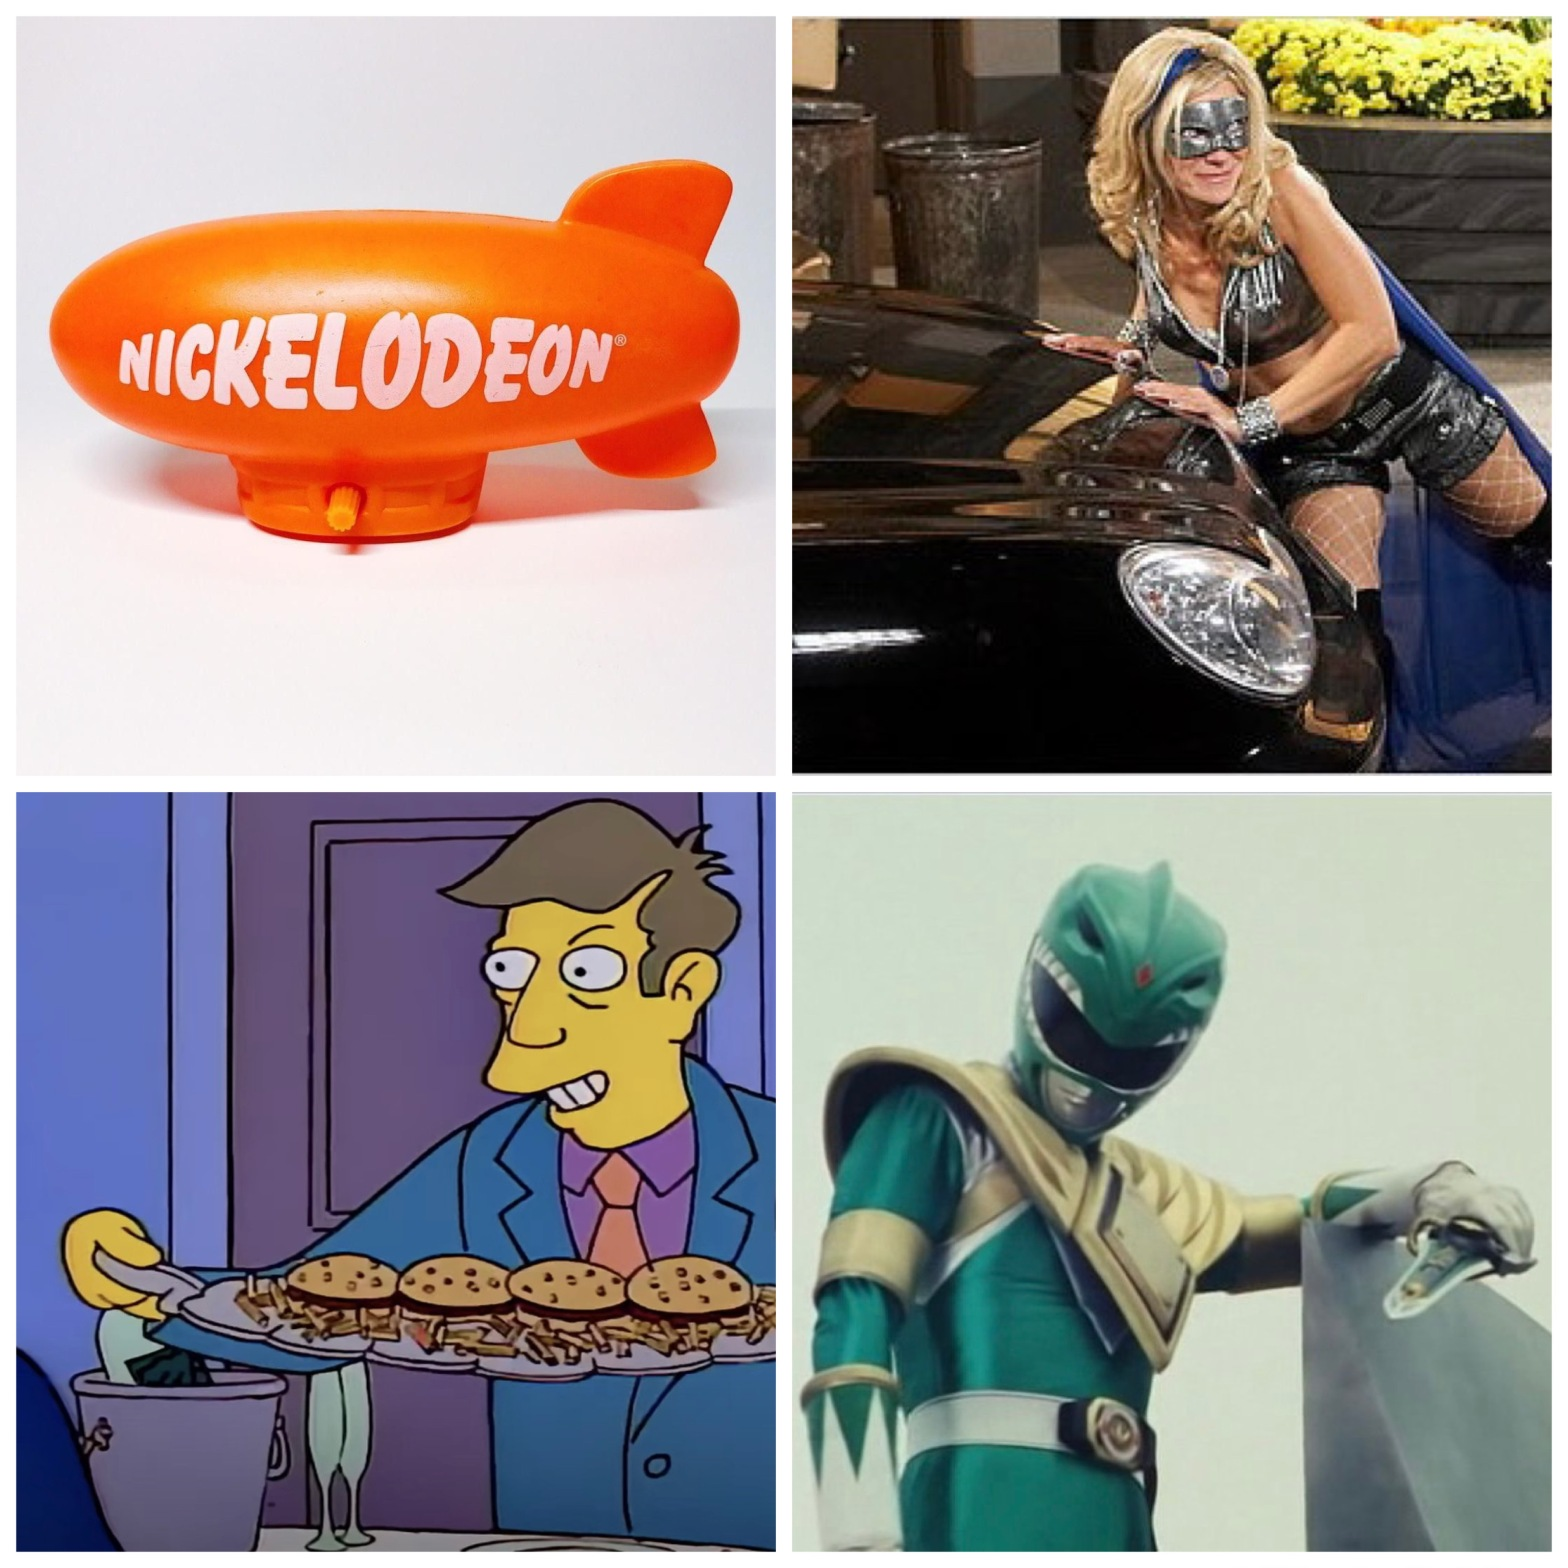 A Nickelodeon Kids' Choice Award blimp, the Guiding Light/Marvel Comics crossover, steamed hams from The Simpsons, and Tommy Oliver from Power Rangers.